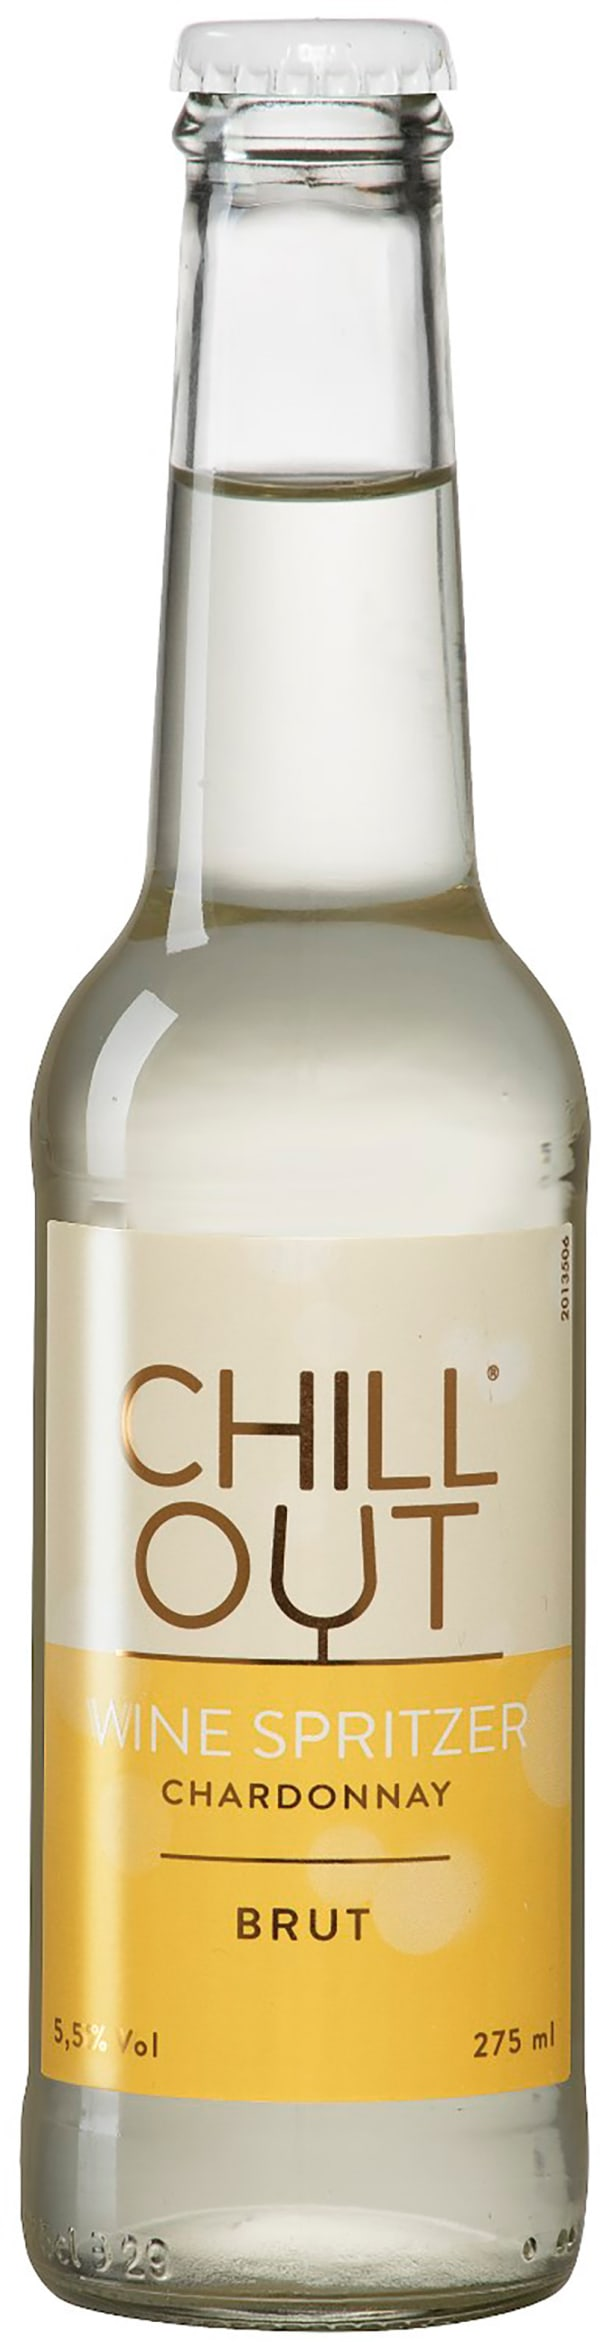 Chill Out Wine Spritzer Chardonnay